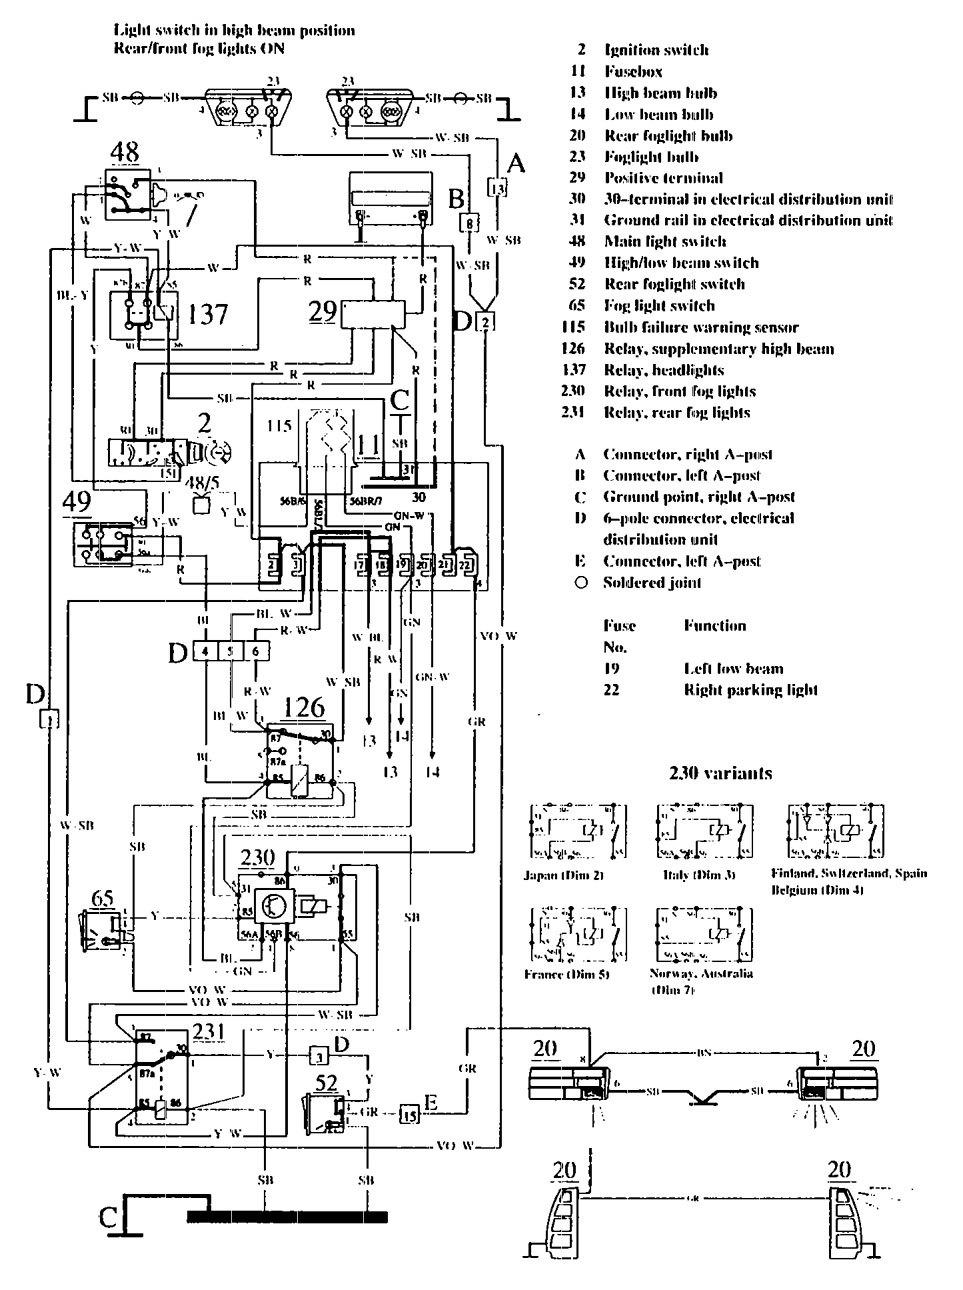 Volvo 740 (1990) - wiring diagrams - fog lamps - Carknowledge.info | Volvo Fog Lights Wiring Diagram |  | Carknowledge.info